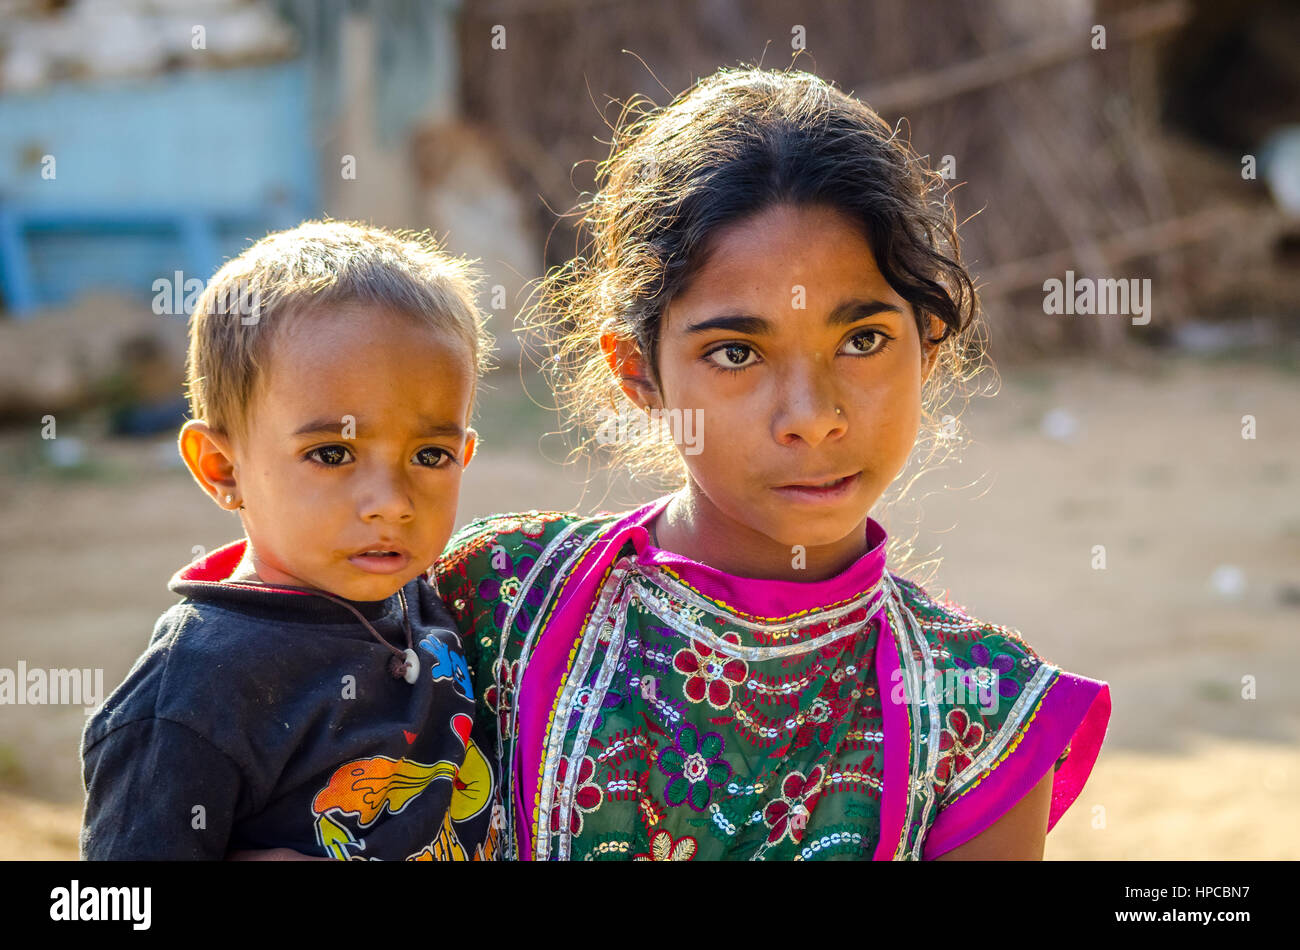 RAJASTHAN, INDIA - NOVEMBER 20, 2016: Unidentified Rajasthani poor young girl holding her brother. Stock Photo